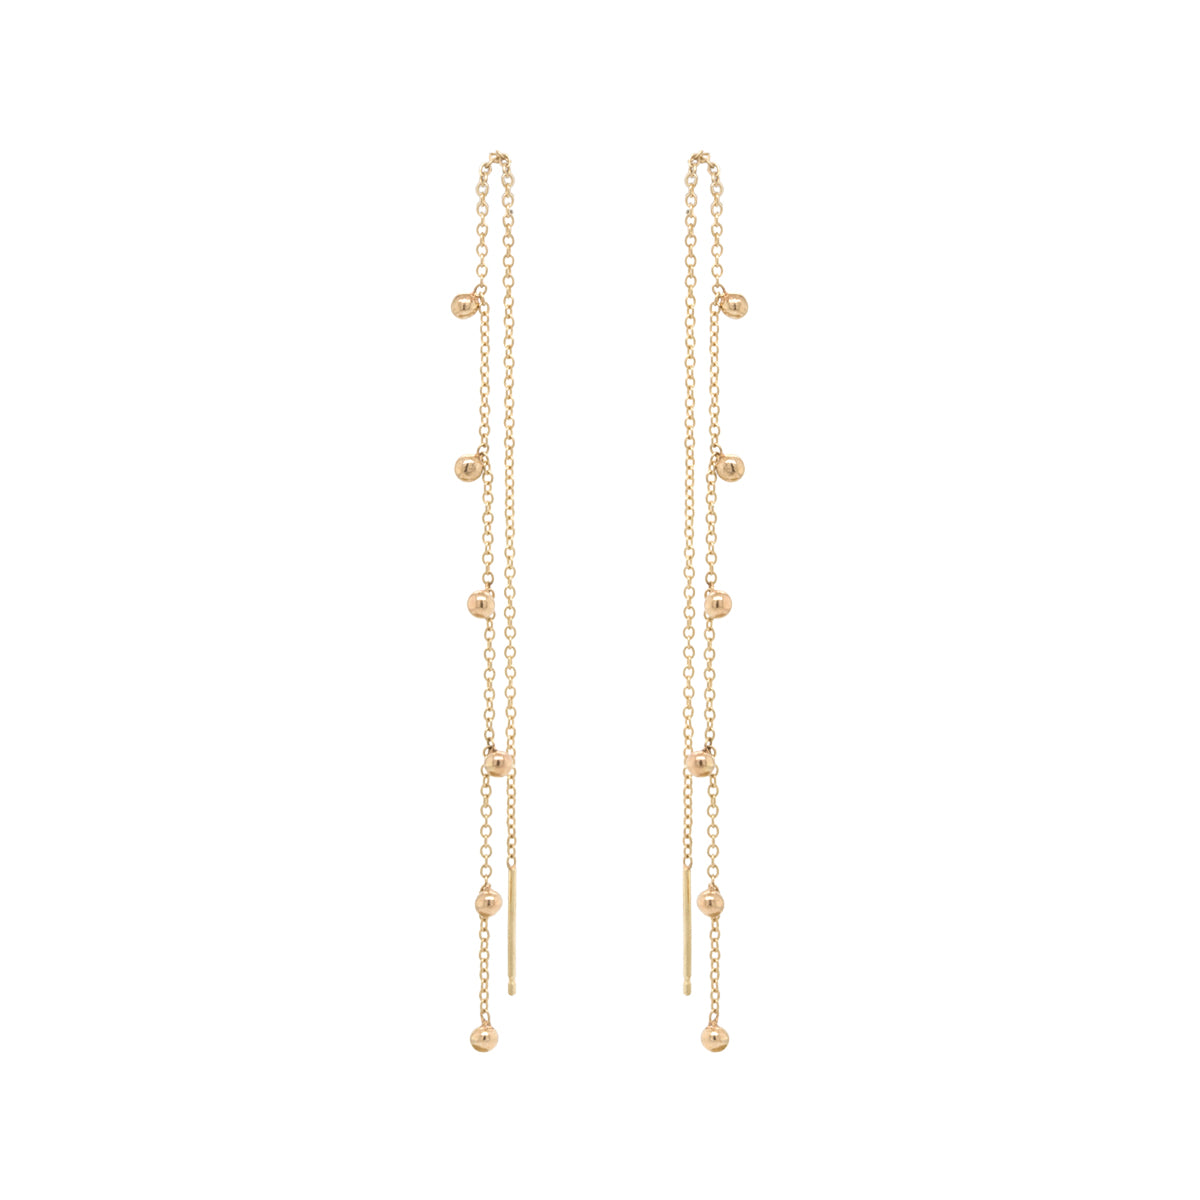 14k scattered bead chain threaders